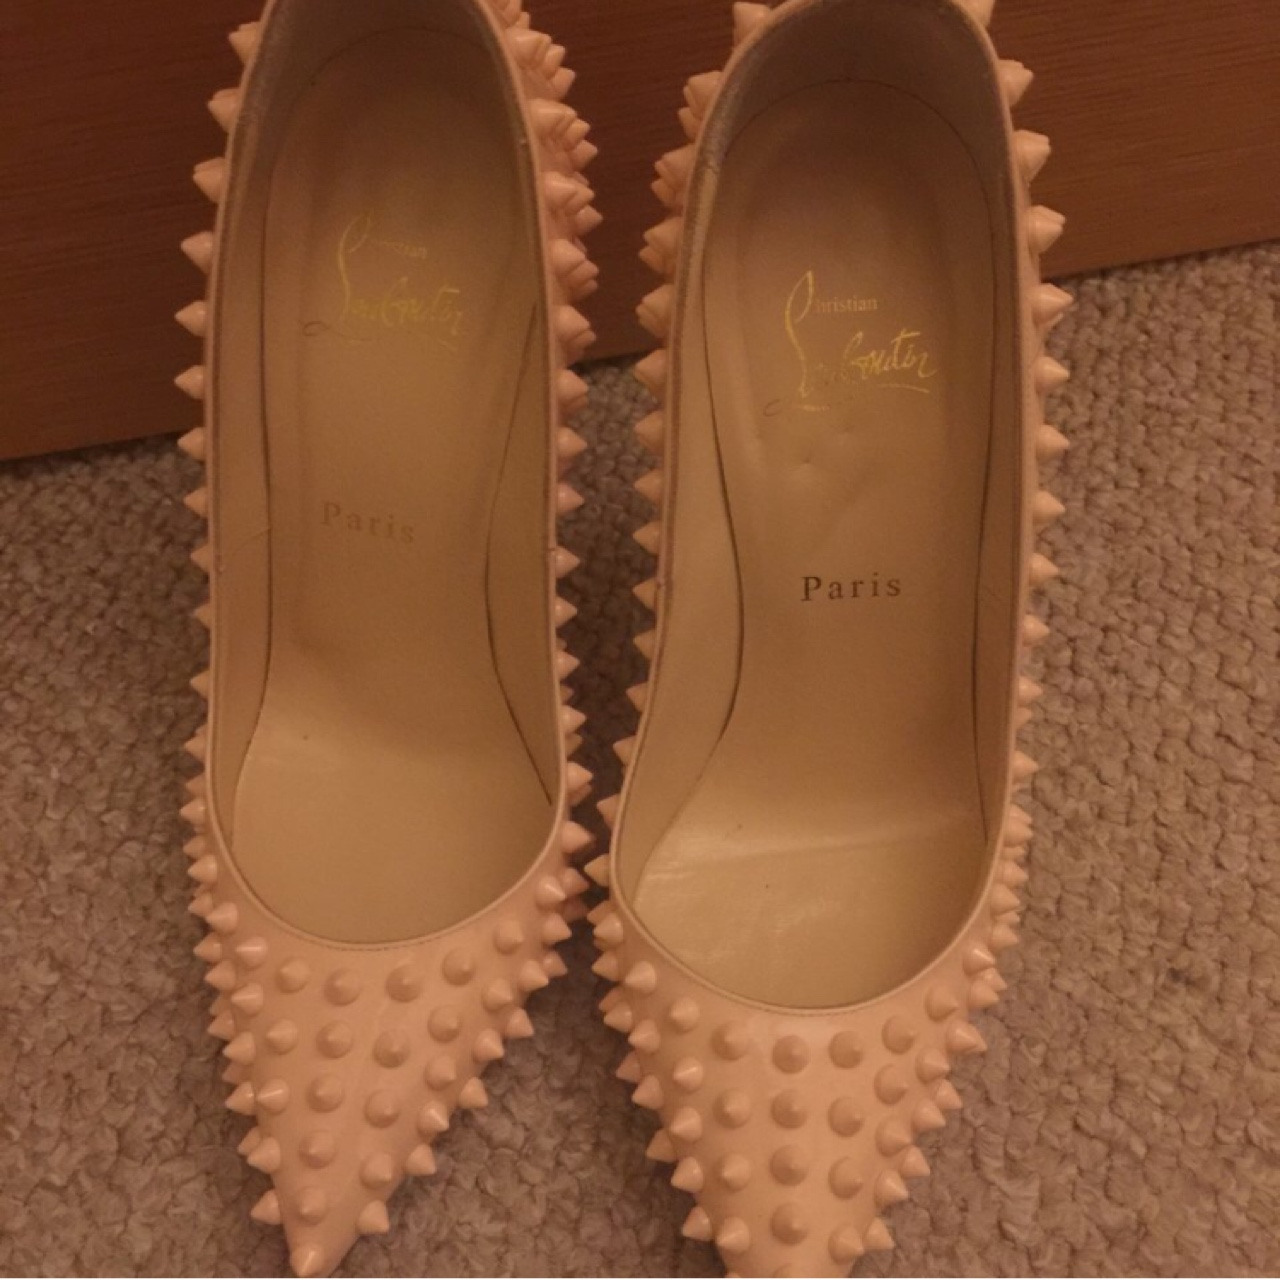 pink spiked louboutin heels